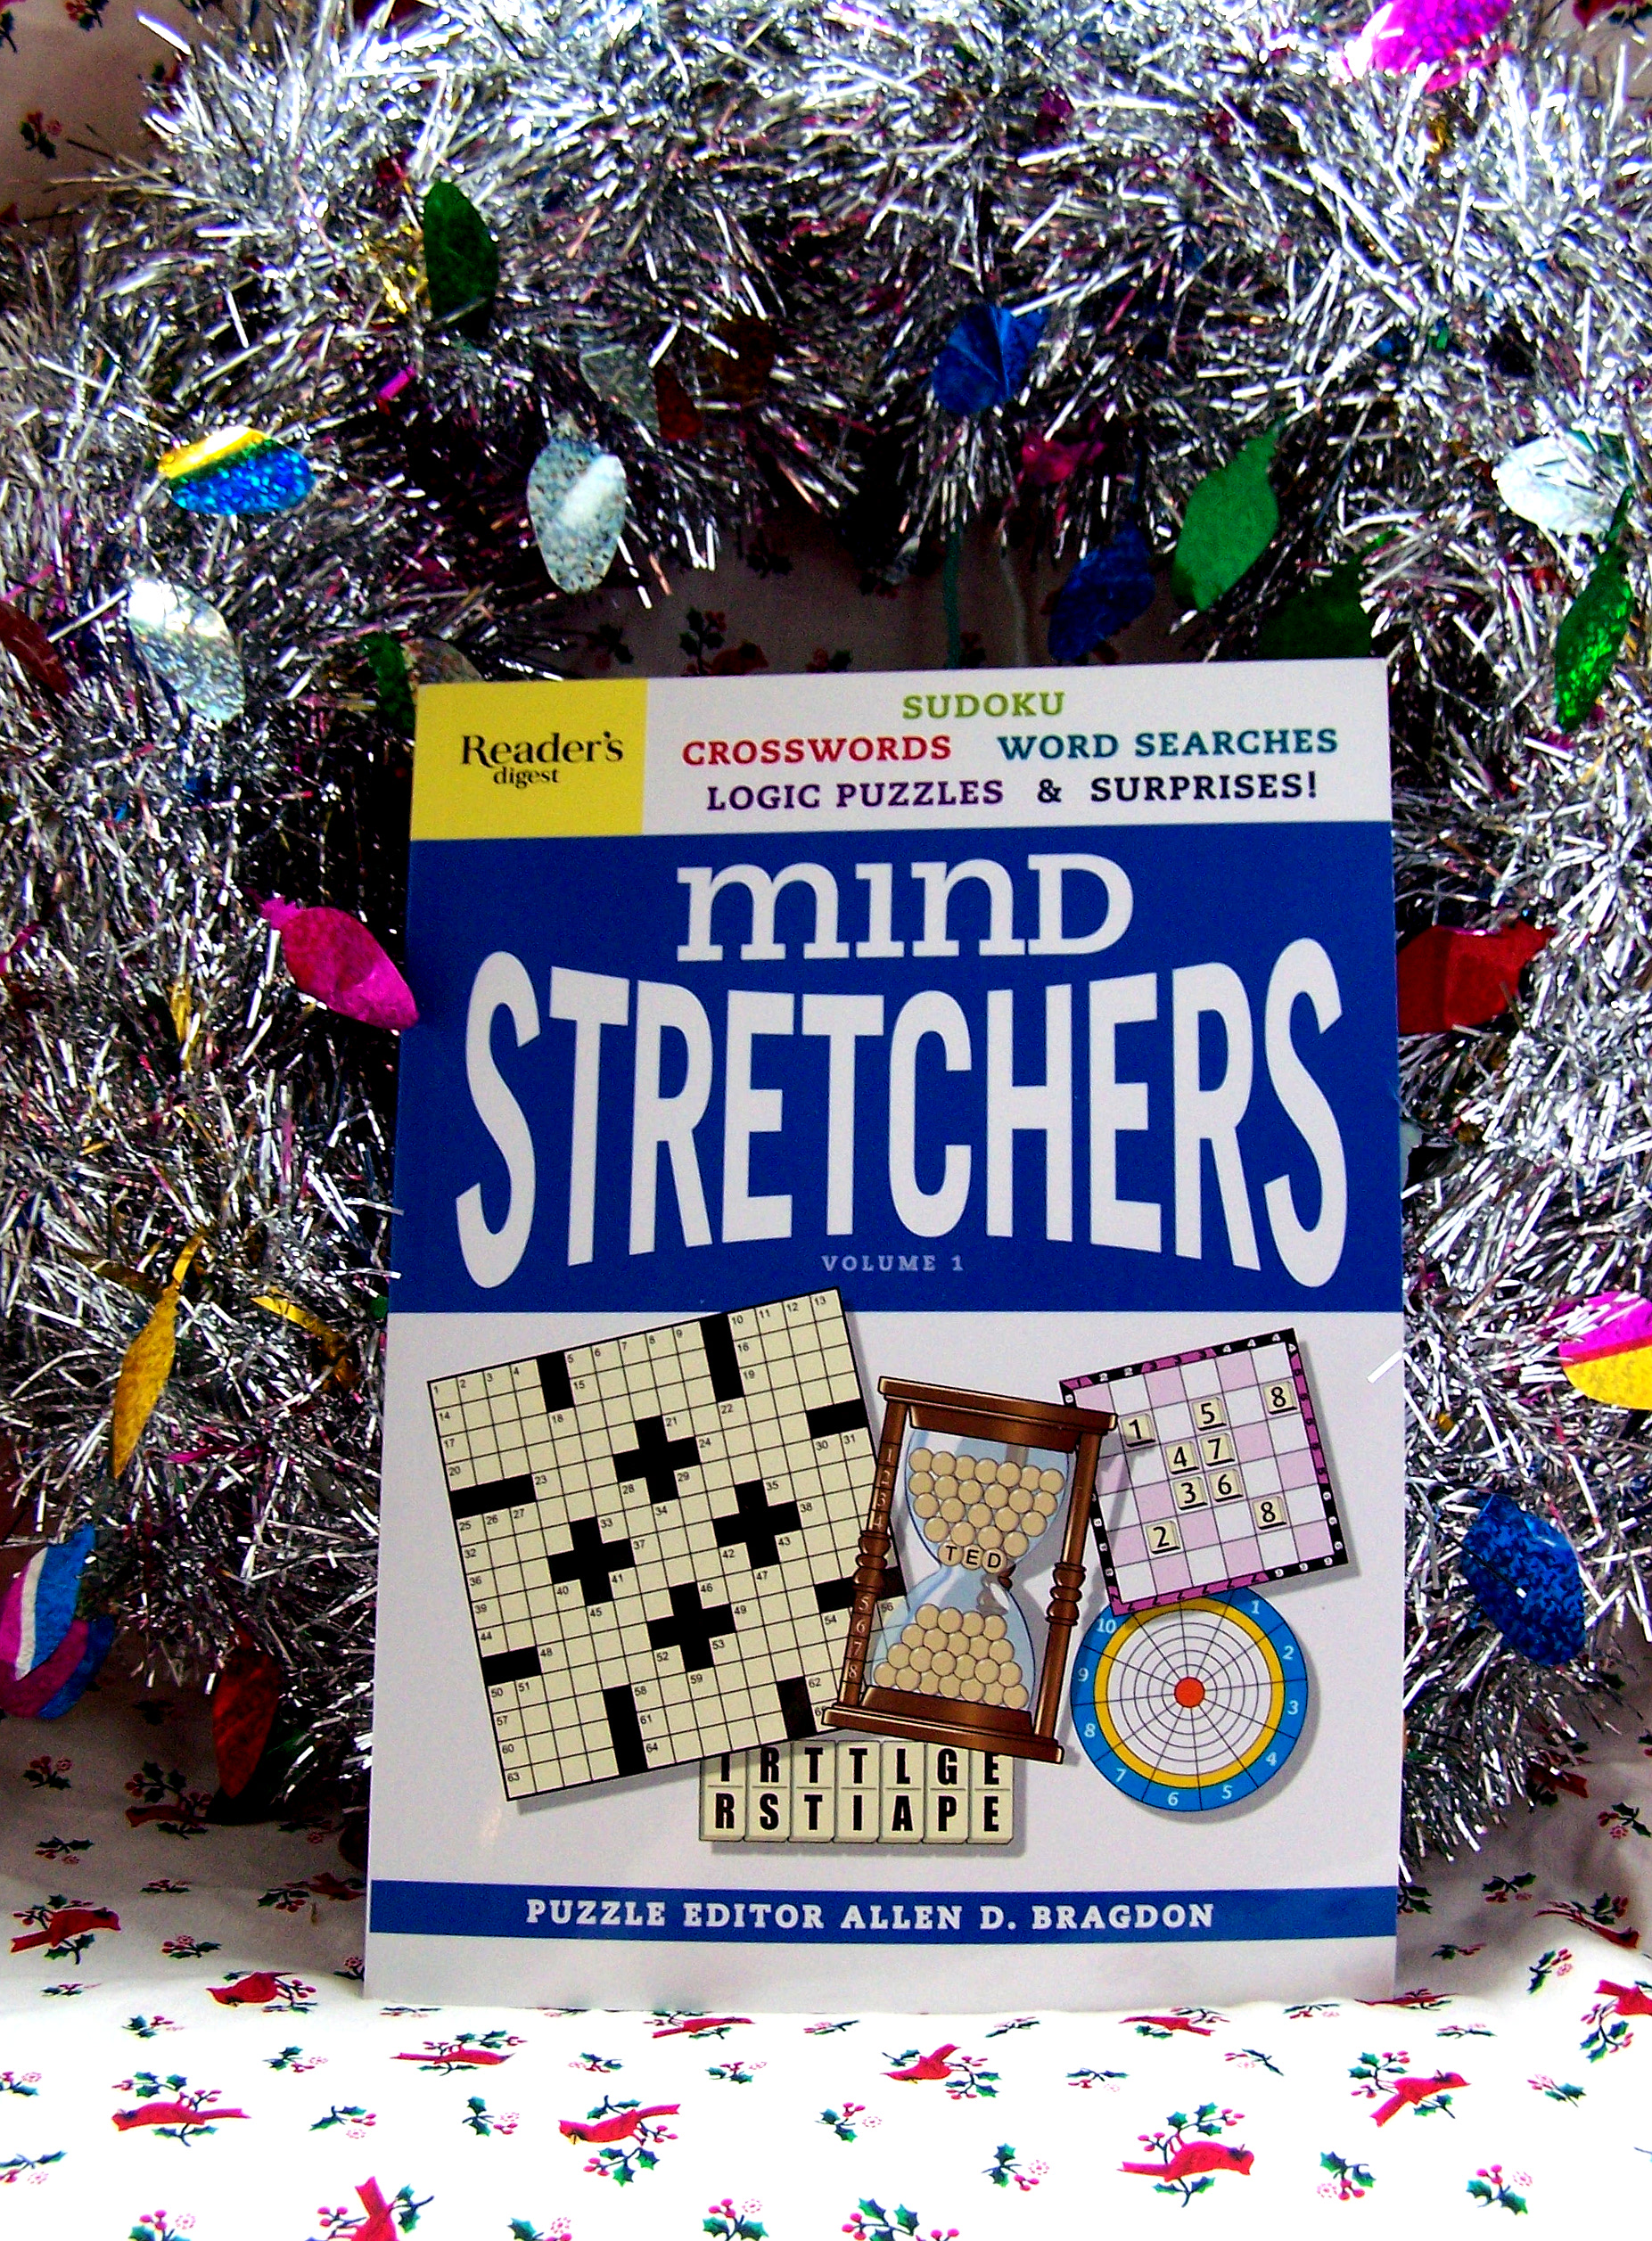 Mind Stretchers Volumes 1 & 2: Holiday Gift Guide Giveaway! Ends 12/17